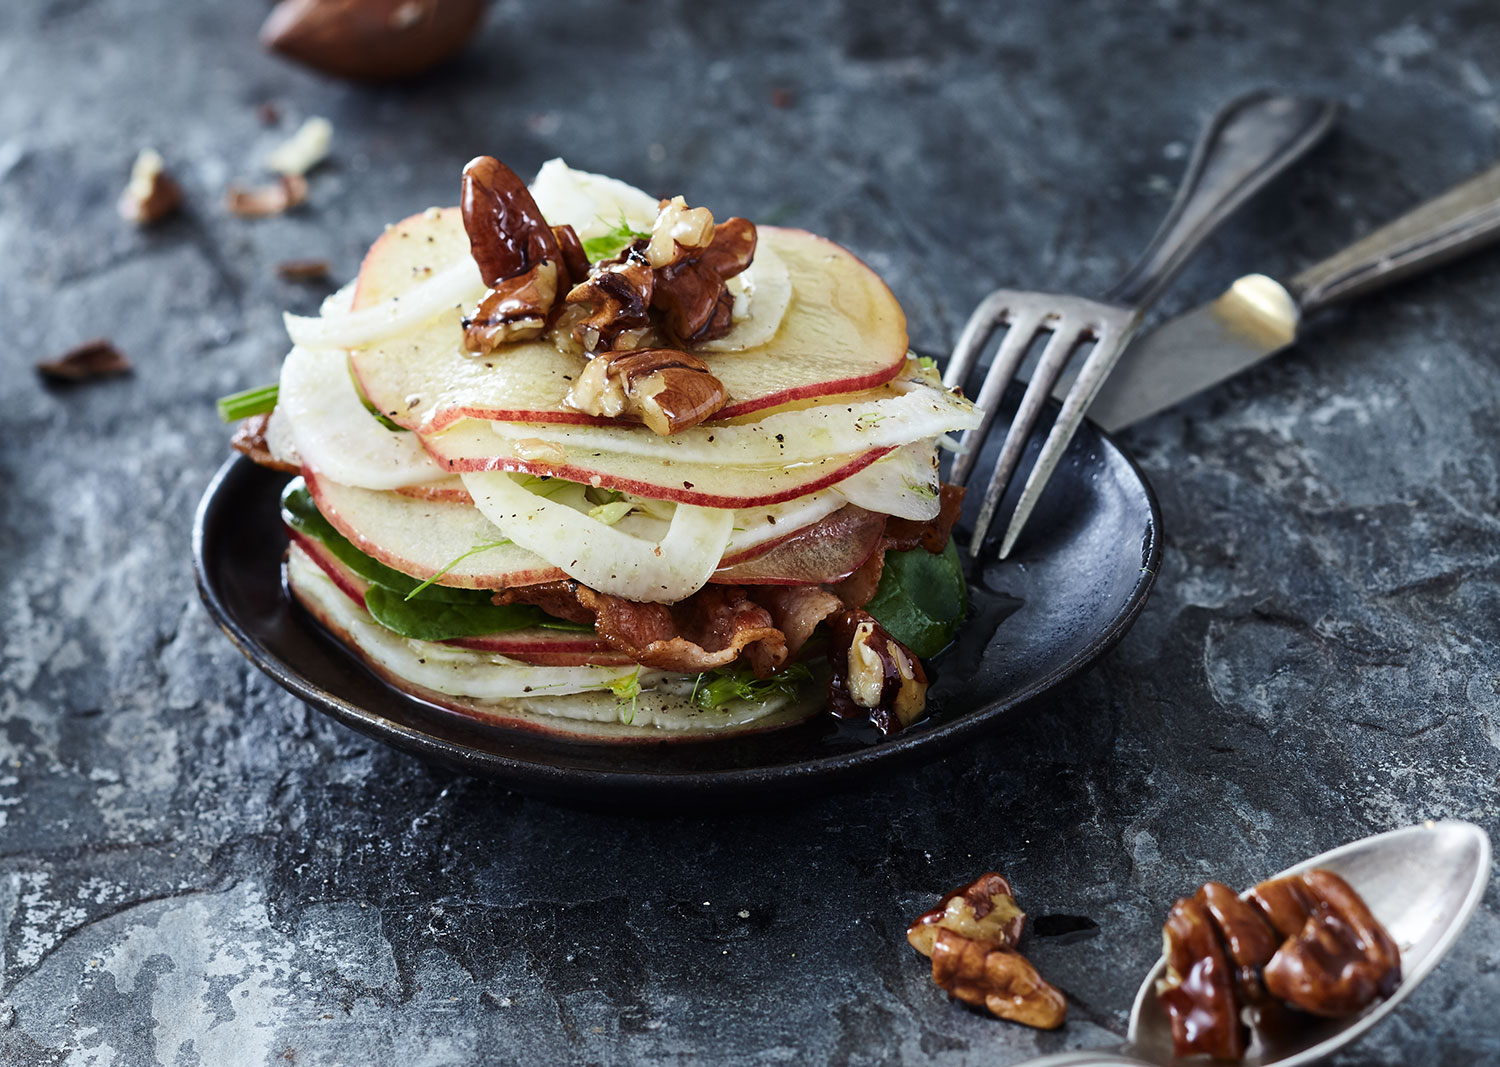 Apple and fennel salad, with bacon and pecan nuts This is